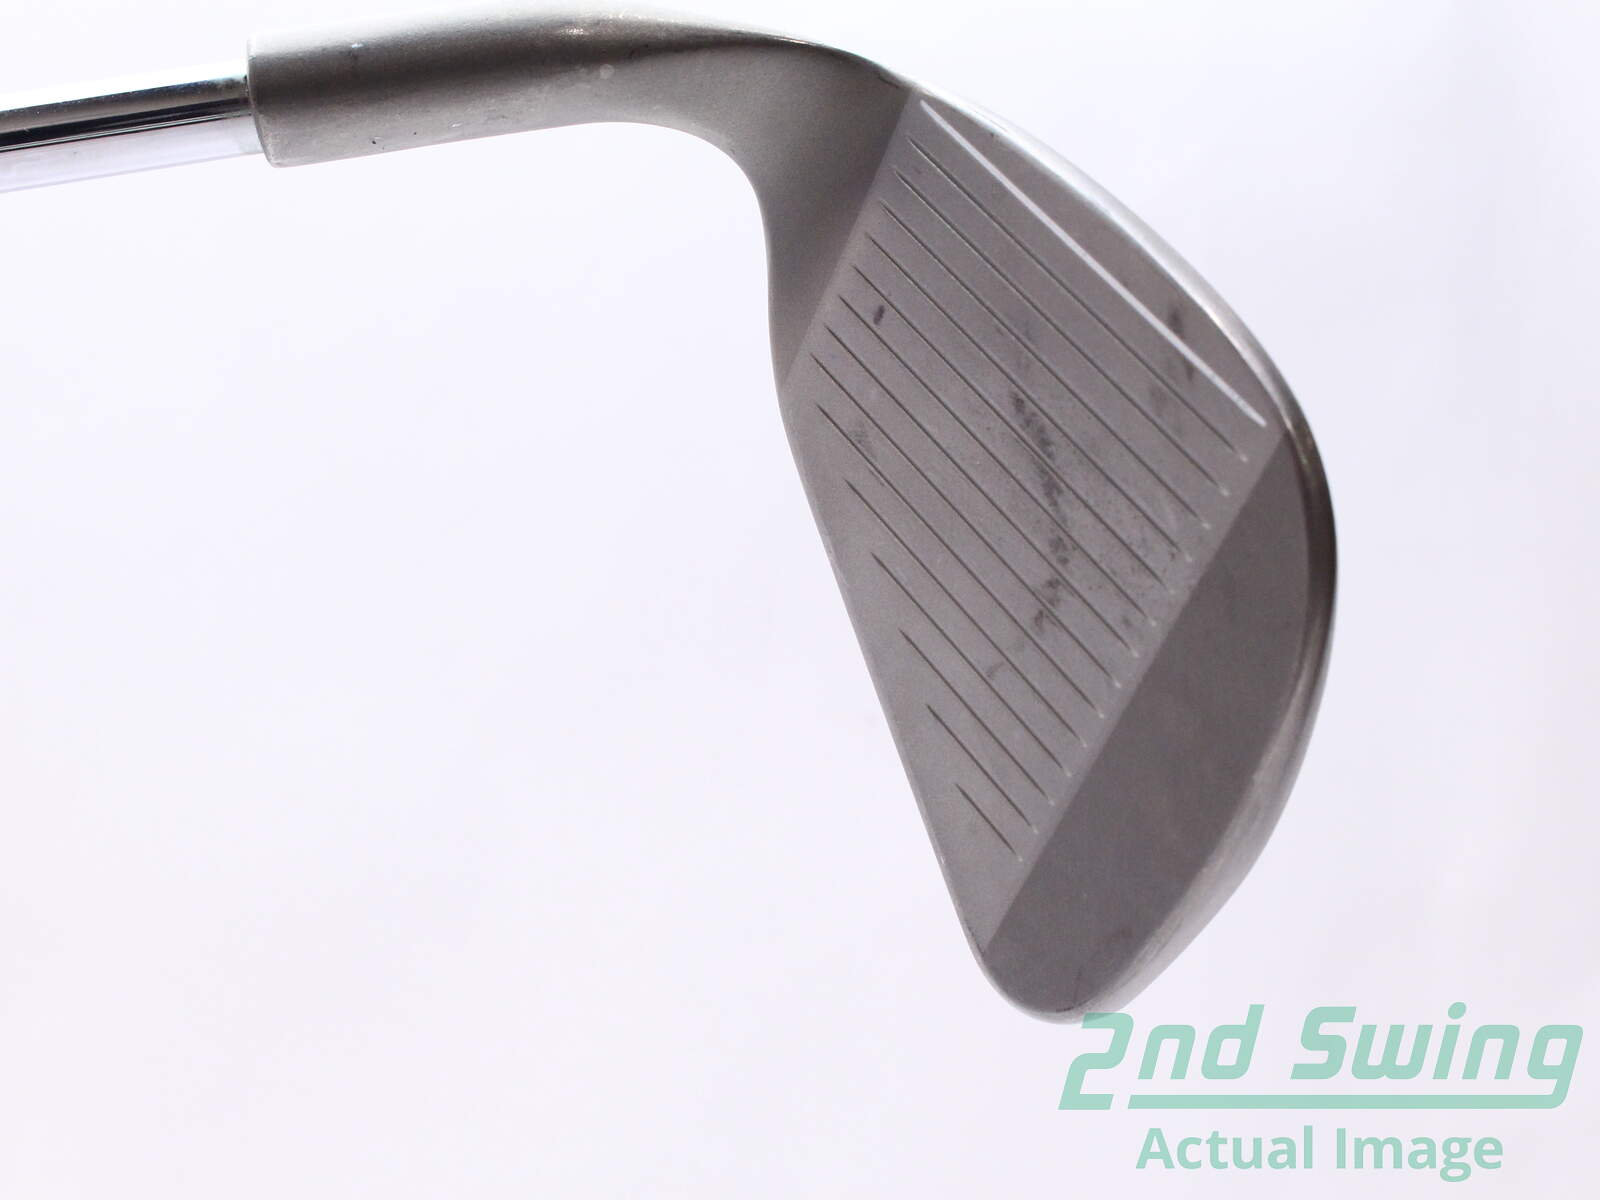 6e192cc30ca1 Tour Issue Ping Eye 2 Gorge Wedge Sand SW Dynamic Gold Tour Issue X100  Steel X-Stiff Right Handed Black Dot 35